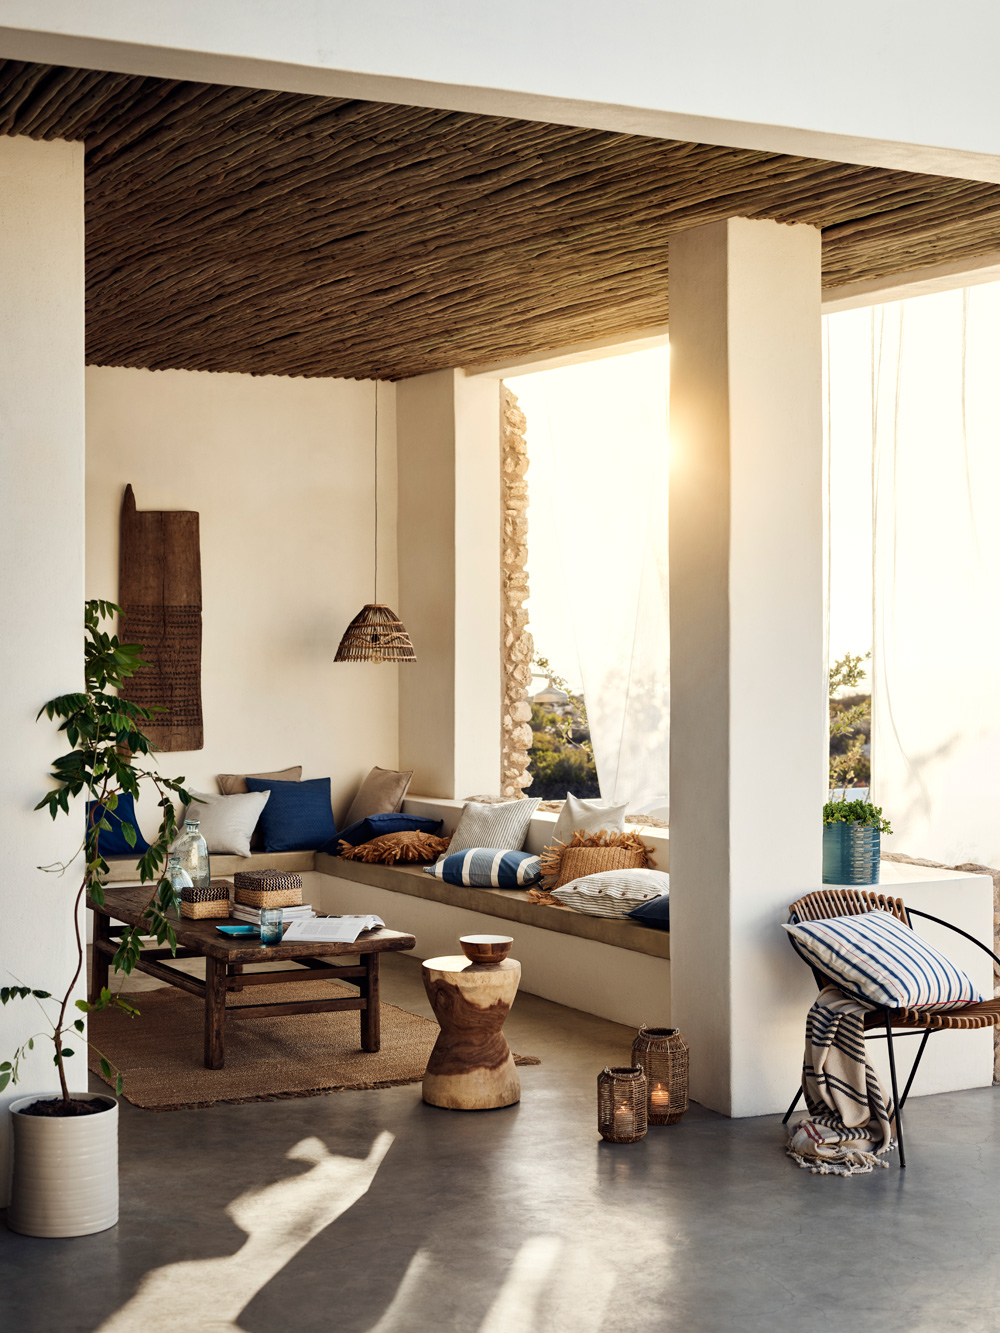 Beautiful Summer Living Inspiration with HM Home